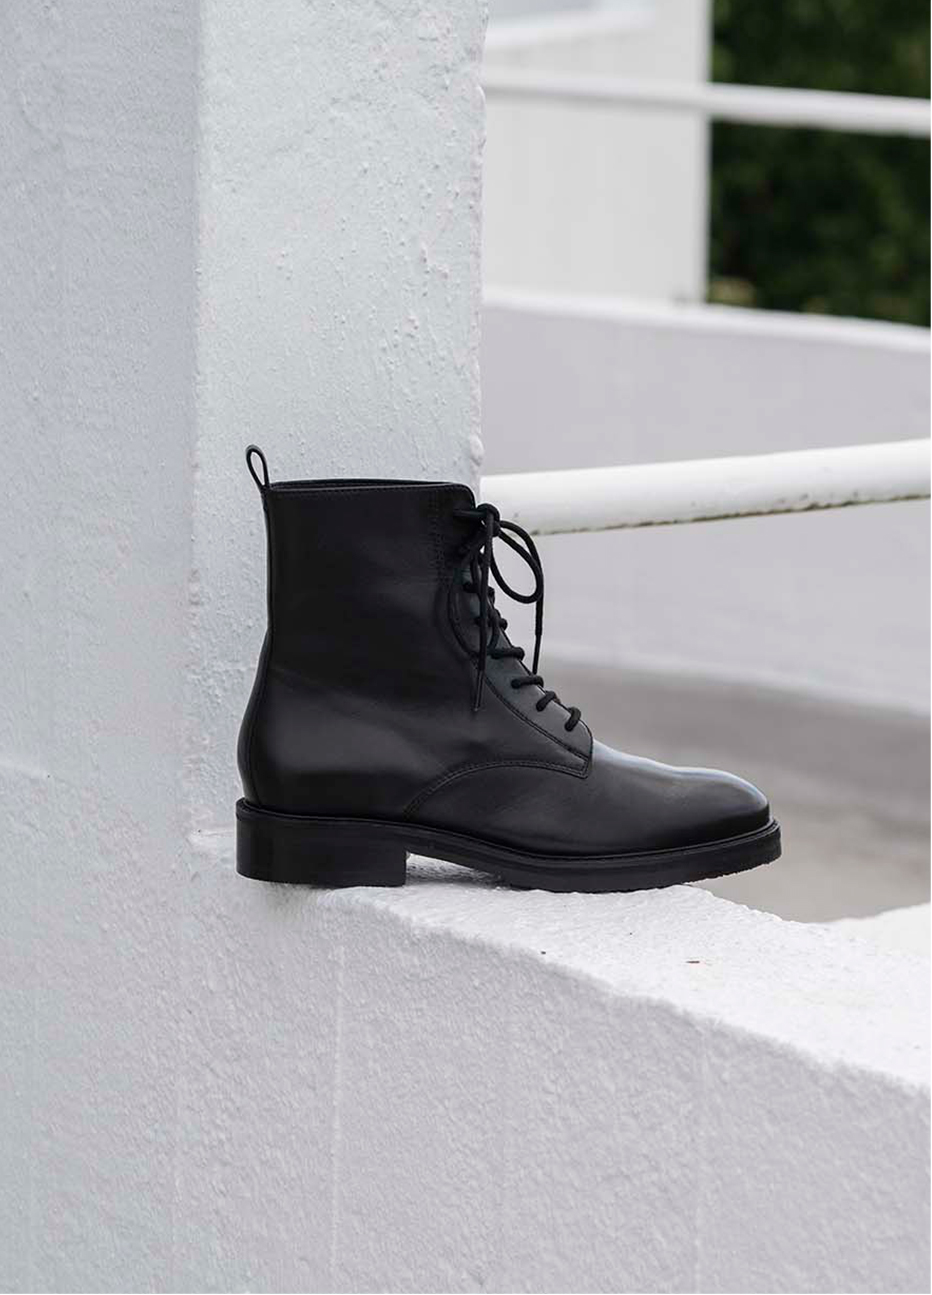 Image of a black ankle boot with buckle detail displayed on an outdoor wall.